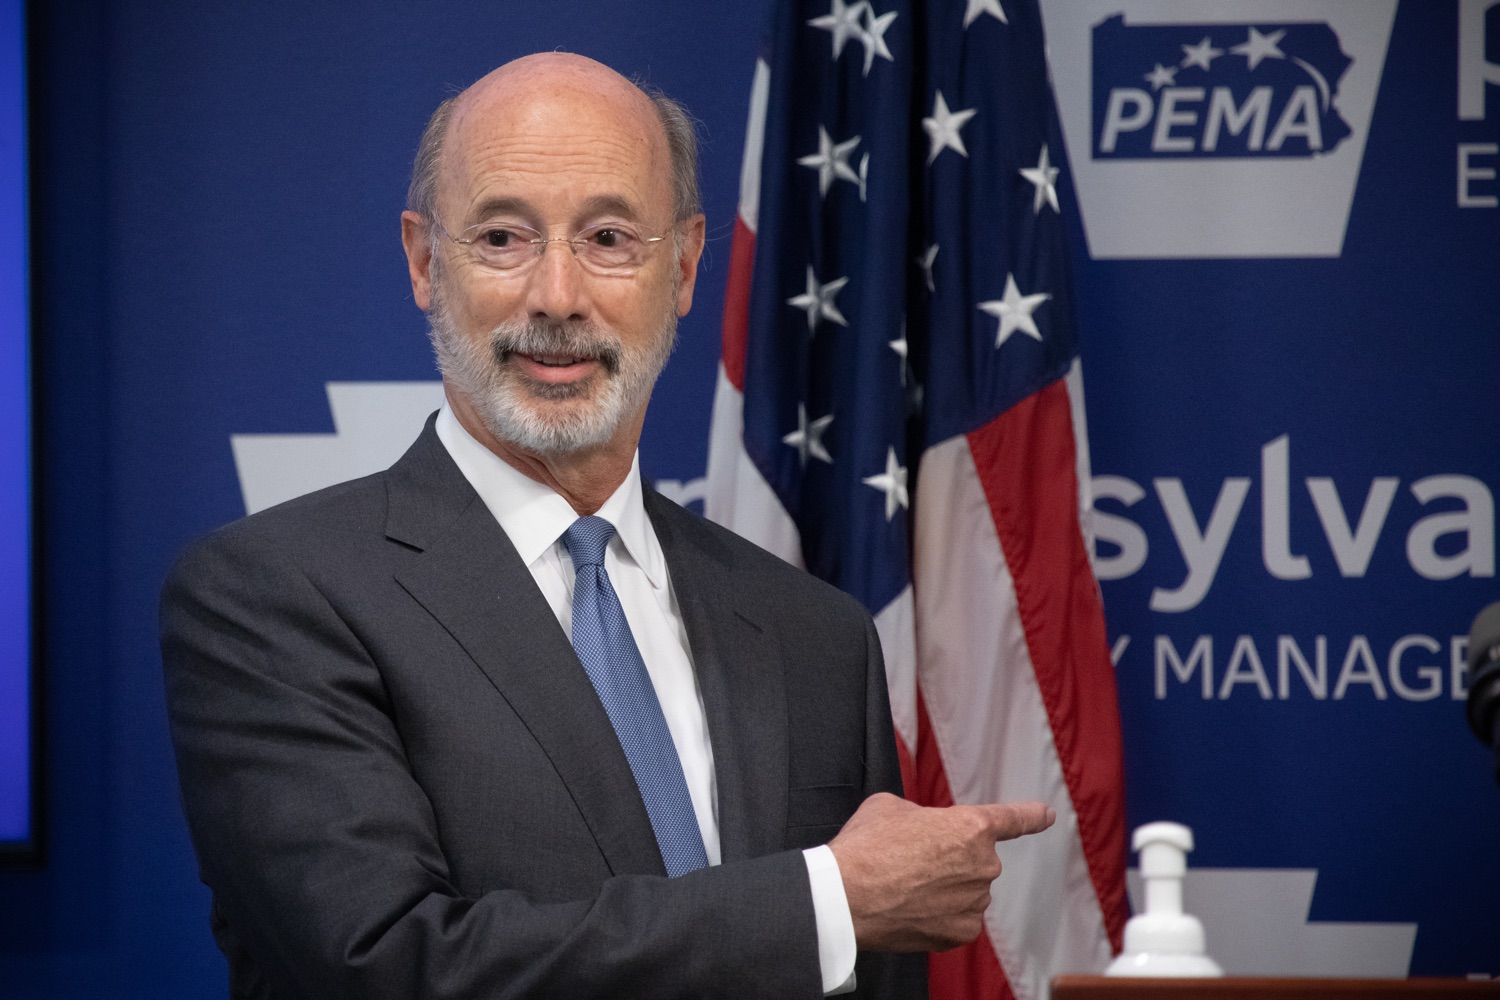 "<a href=""https://filesource.wostreaming.net/commonwealthofpa/photo/18088_gov_covid_update_dz_0010.jpg"" target=""_blank"">⇣ Download Photo<br></a>Governor Tom Wolf answers questions from the press. Governor Tom Wolf announced that people with intellectual disabilities and autism and the providers of support services for these vulnerable Pennsylvanians will receive $260 million in CARES Act funding to help continue to provide services during the COVID-19 pandemic.  Gov. Wolf was joined by Department of Human Services Secretary Teresa Miller, who outlined to details of funding allocations.  JUNE 15, 2020 - HARRISBURG, PA"